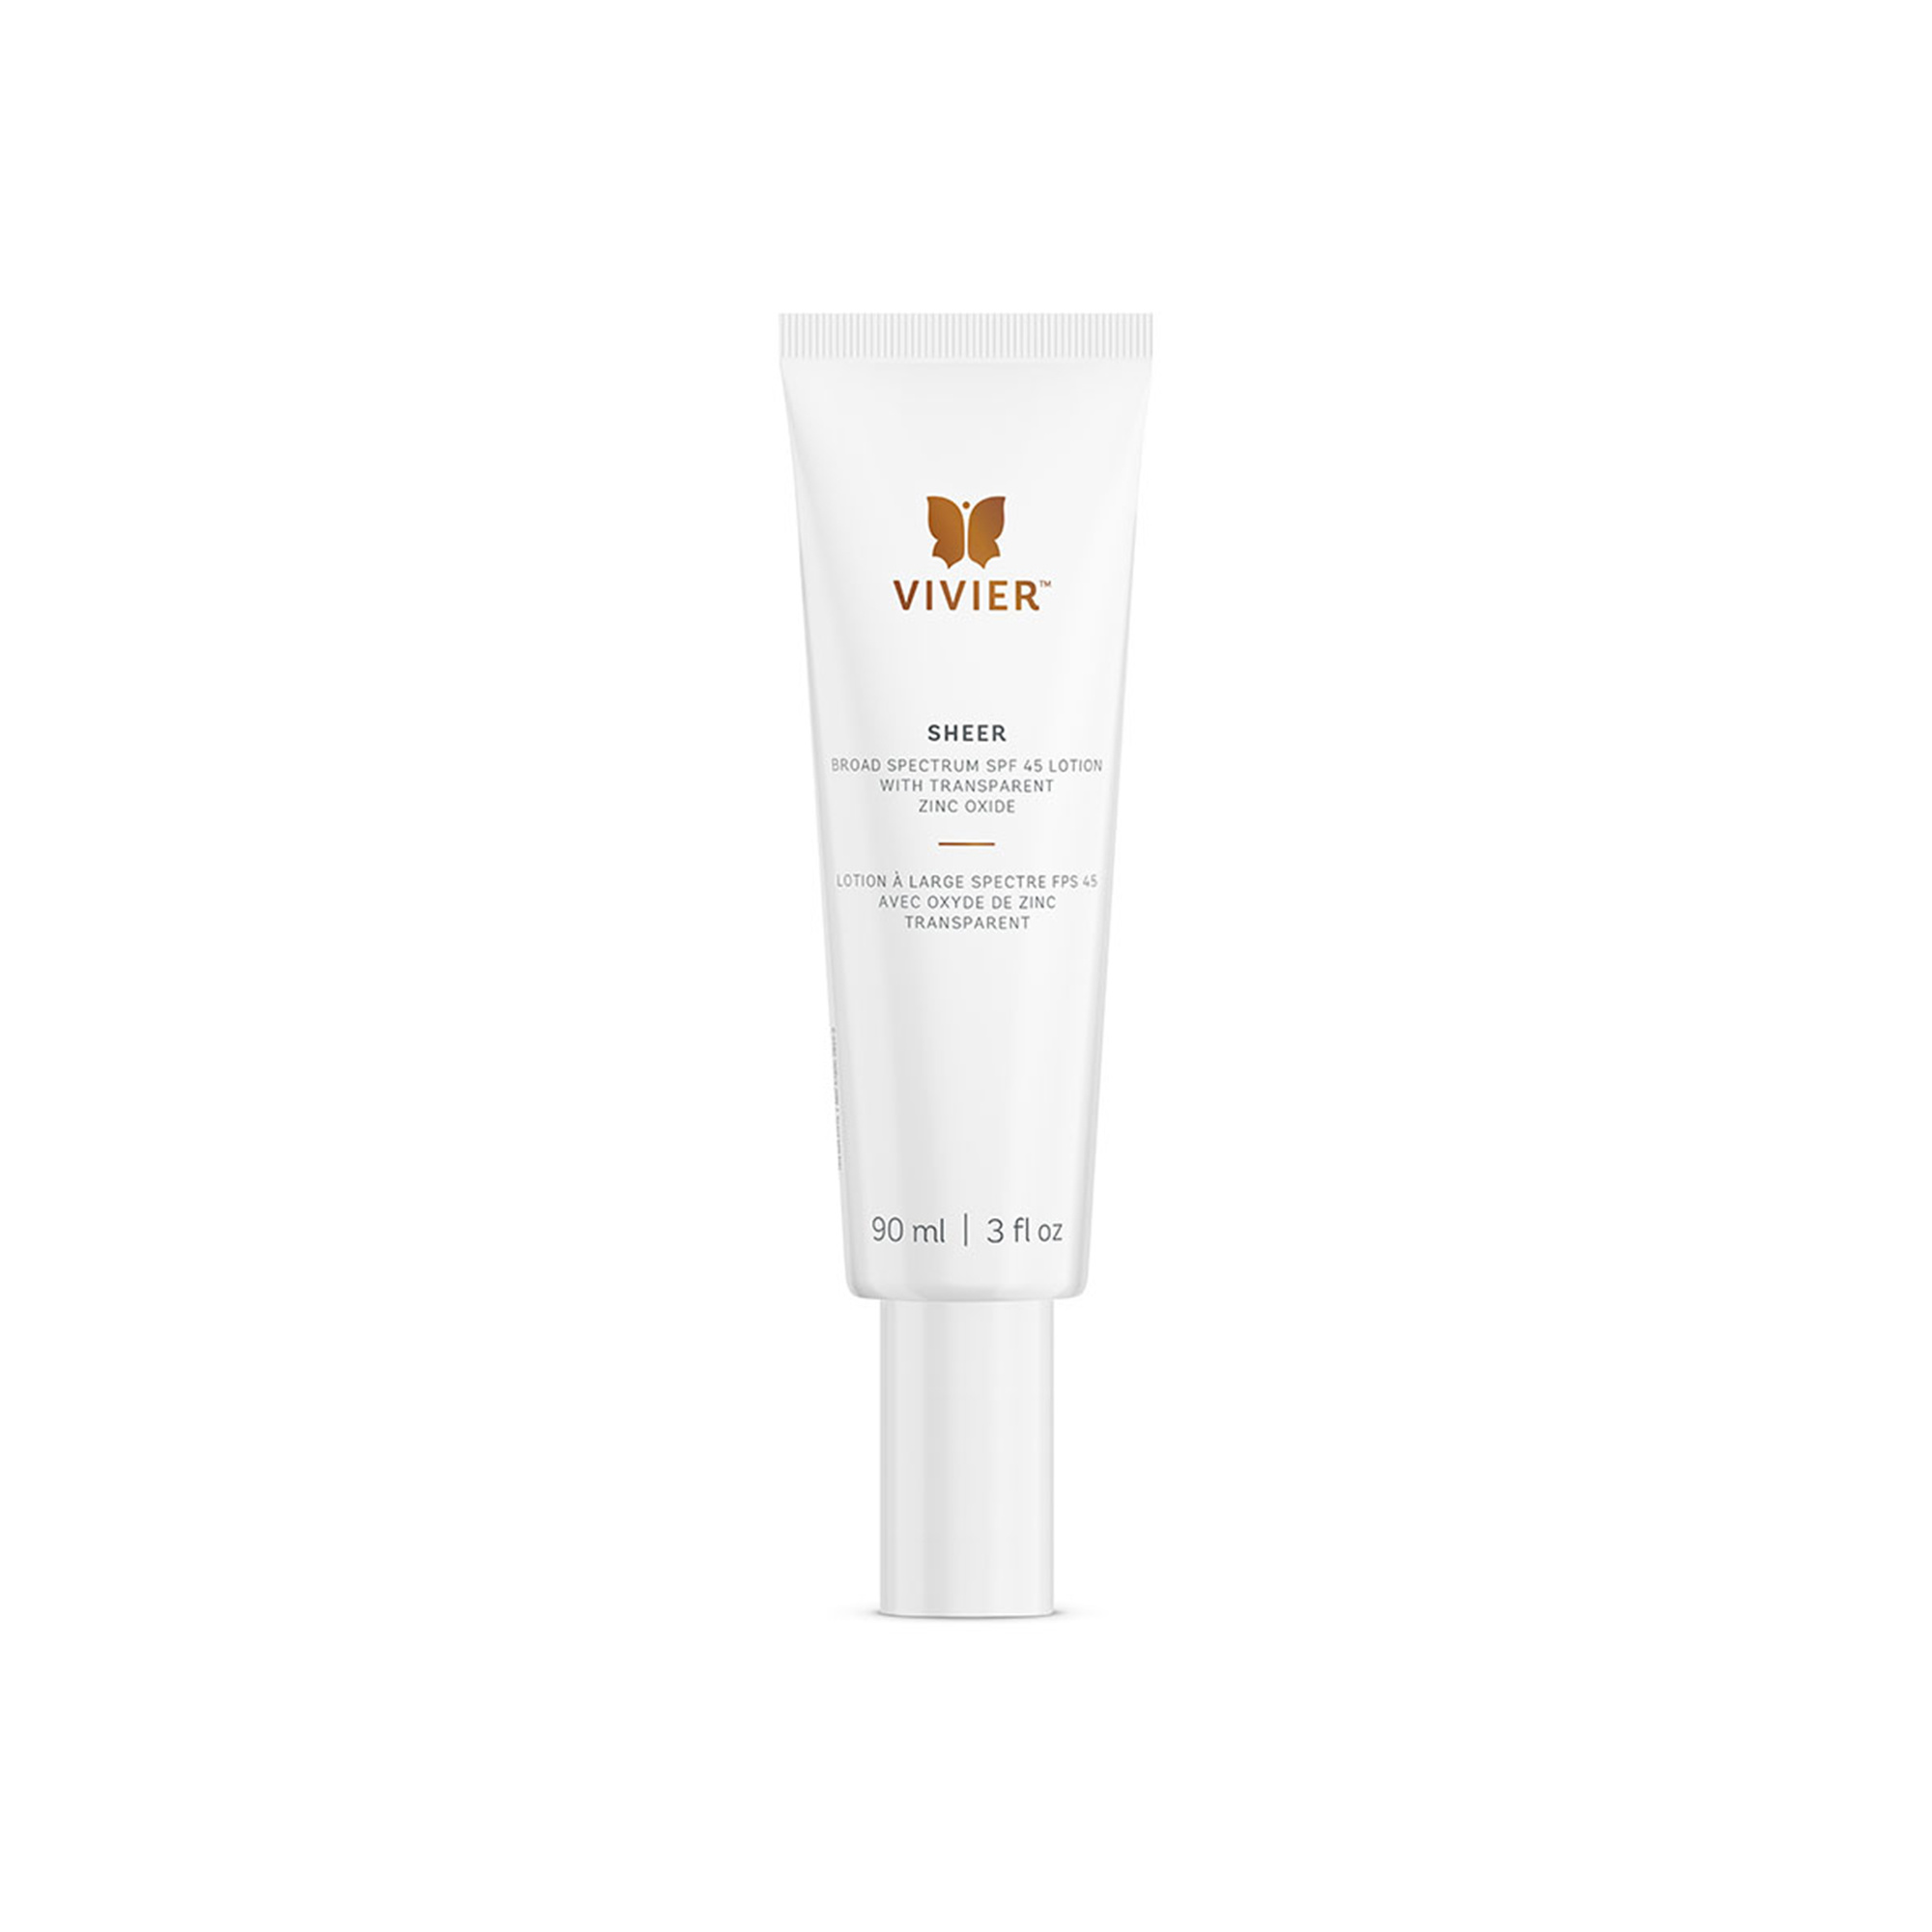 Vivier Sheer Broad Spectrum SPF 45 Lotion - 90 ml